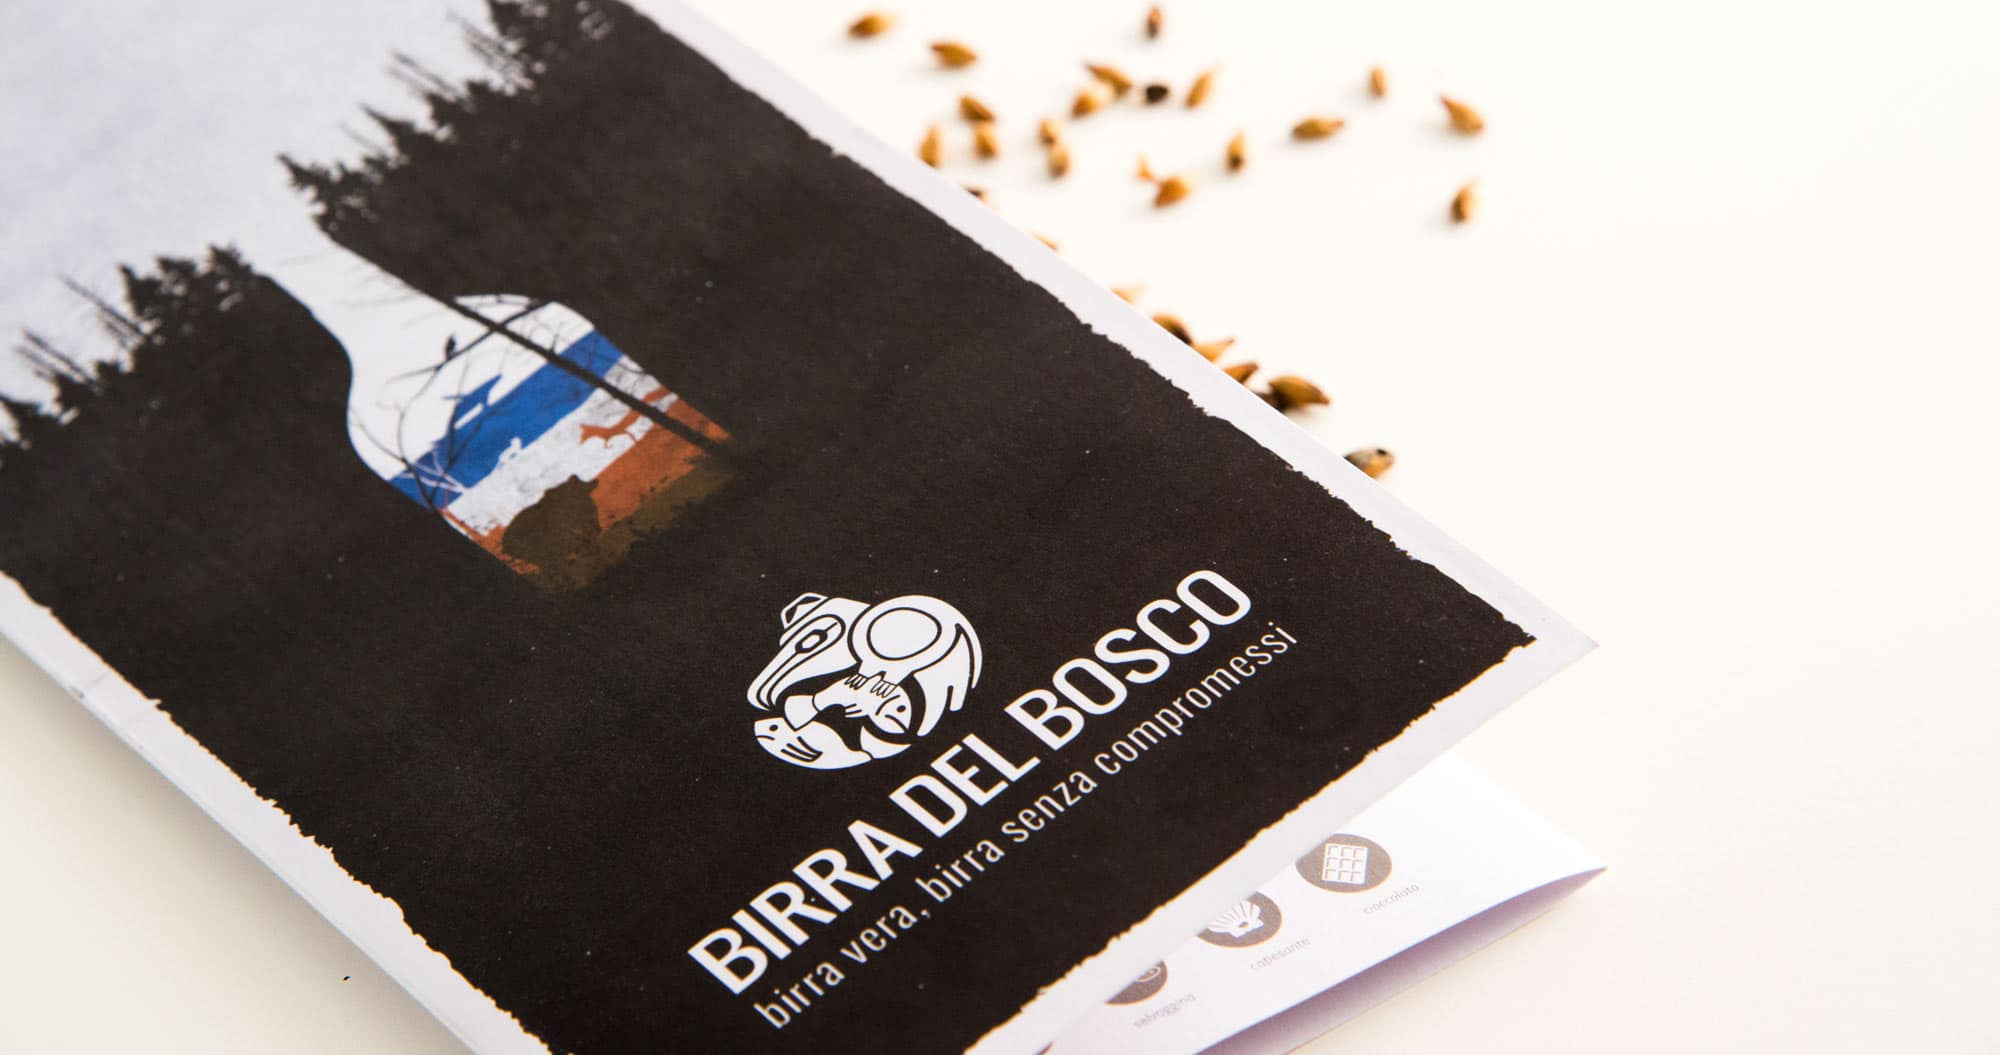 birradelbosco_flyer